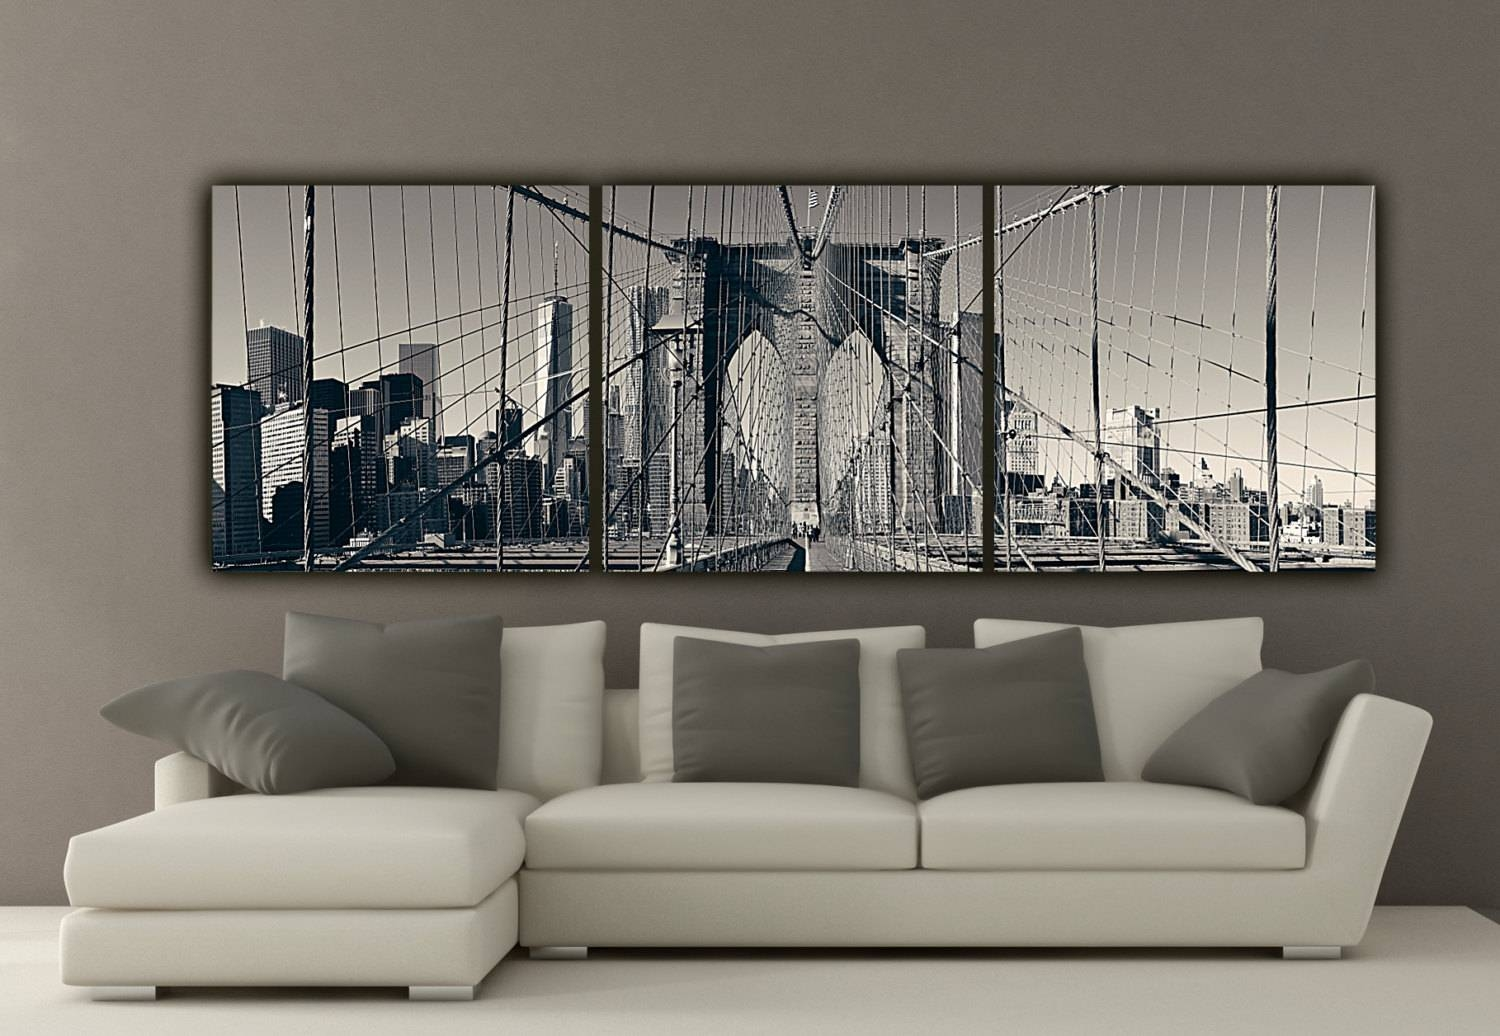 New York Brooklyn Bridge Canvas Wall Art Black And White New With Regard To Current New York Skyline Canvas Black And White Wall Art (View 2 of 20)